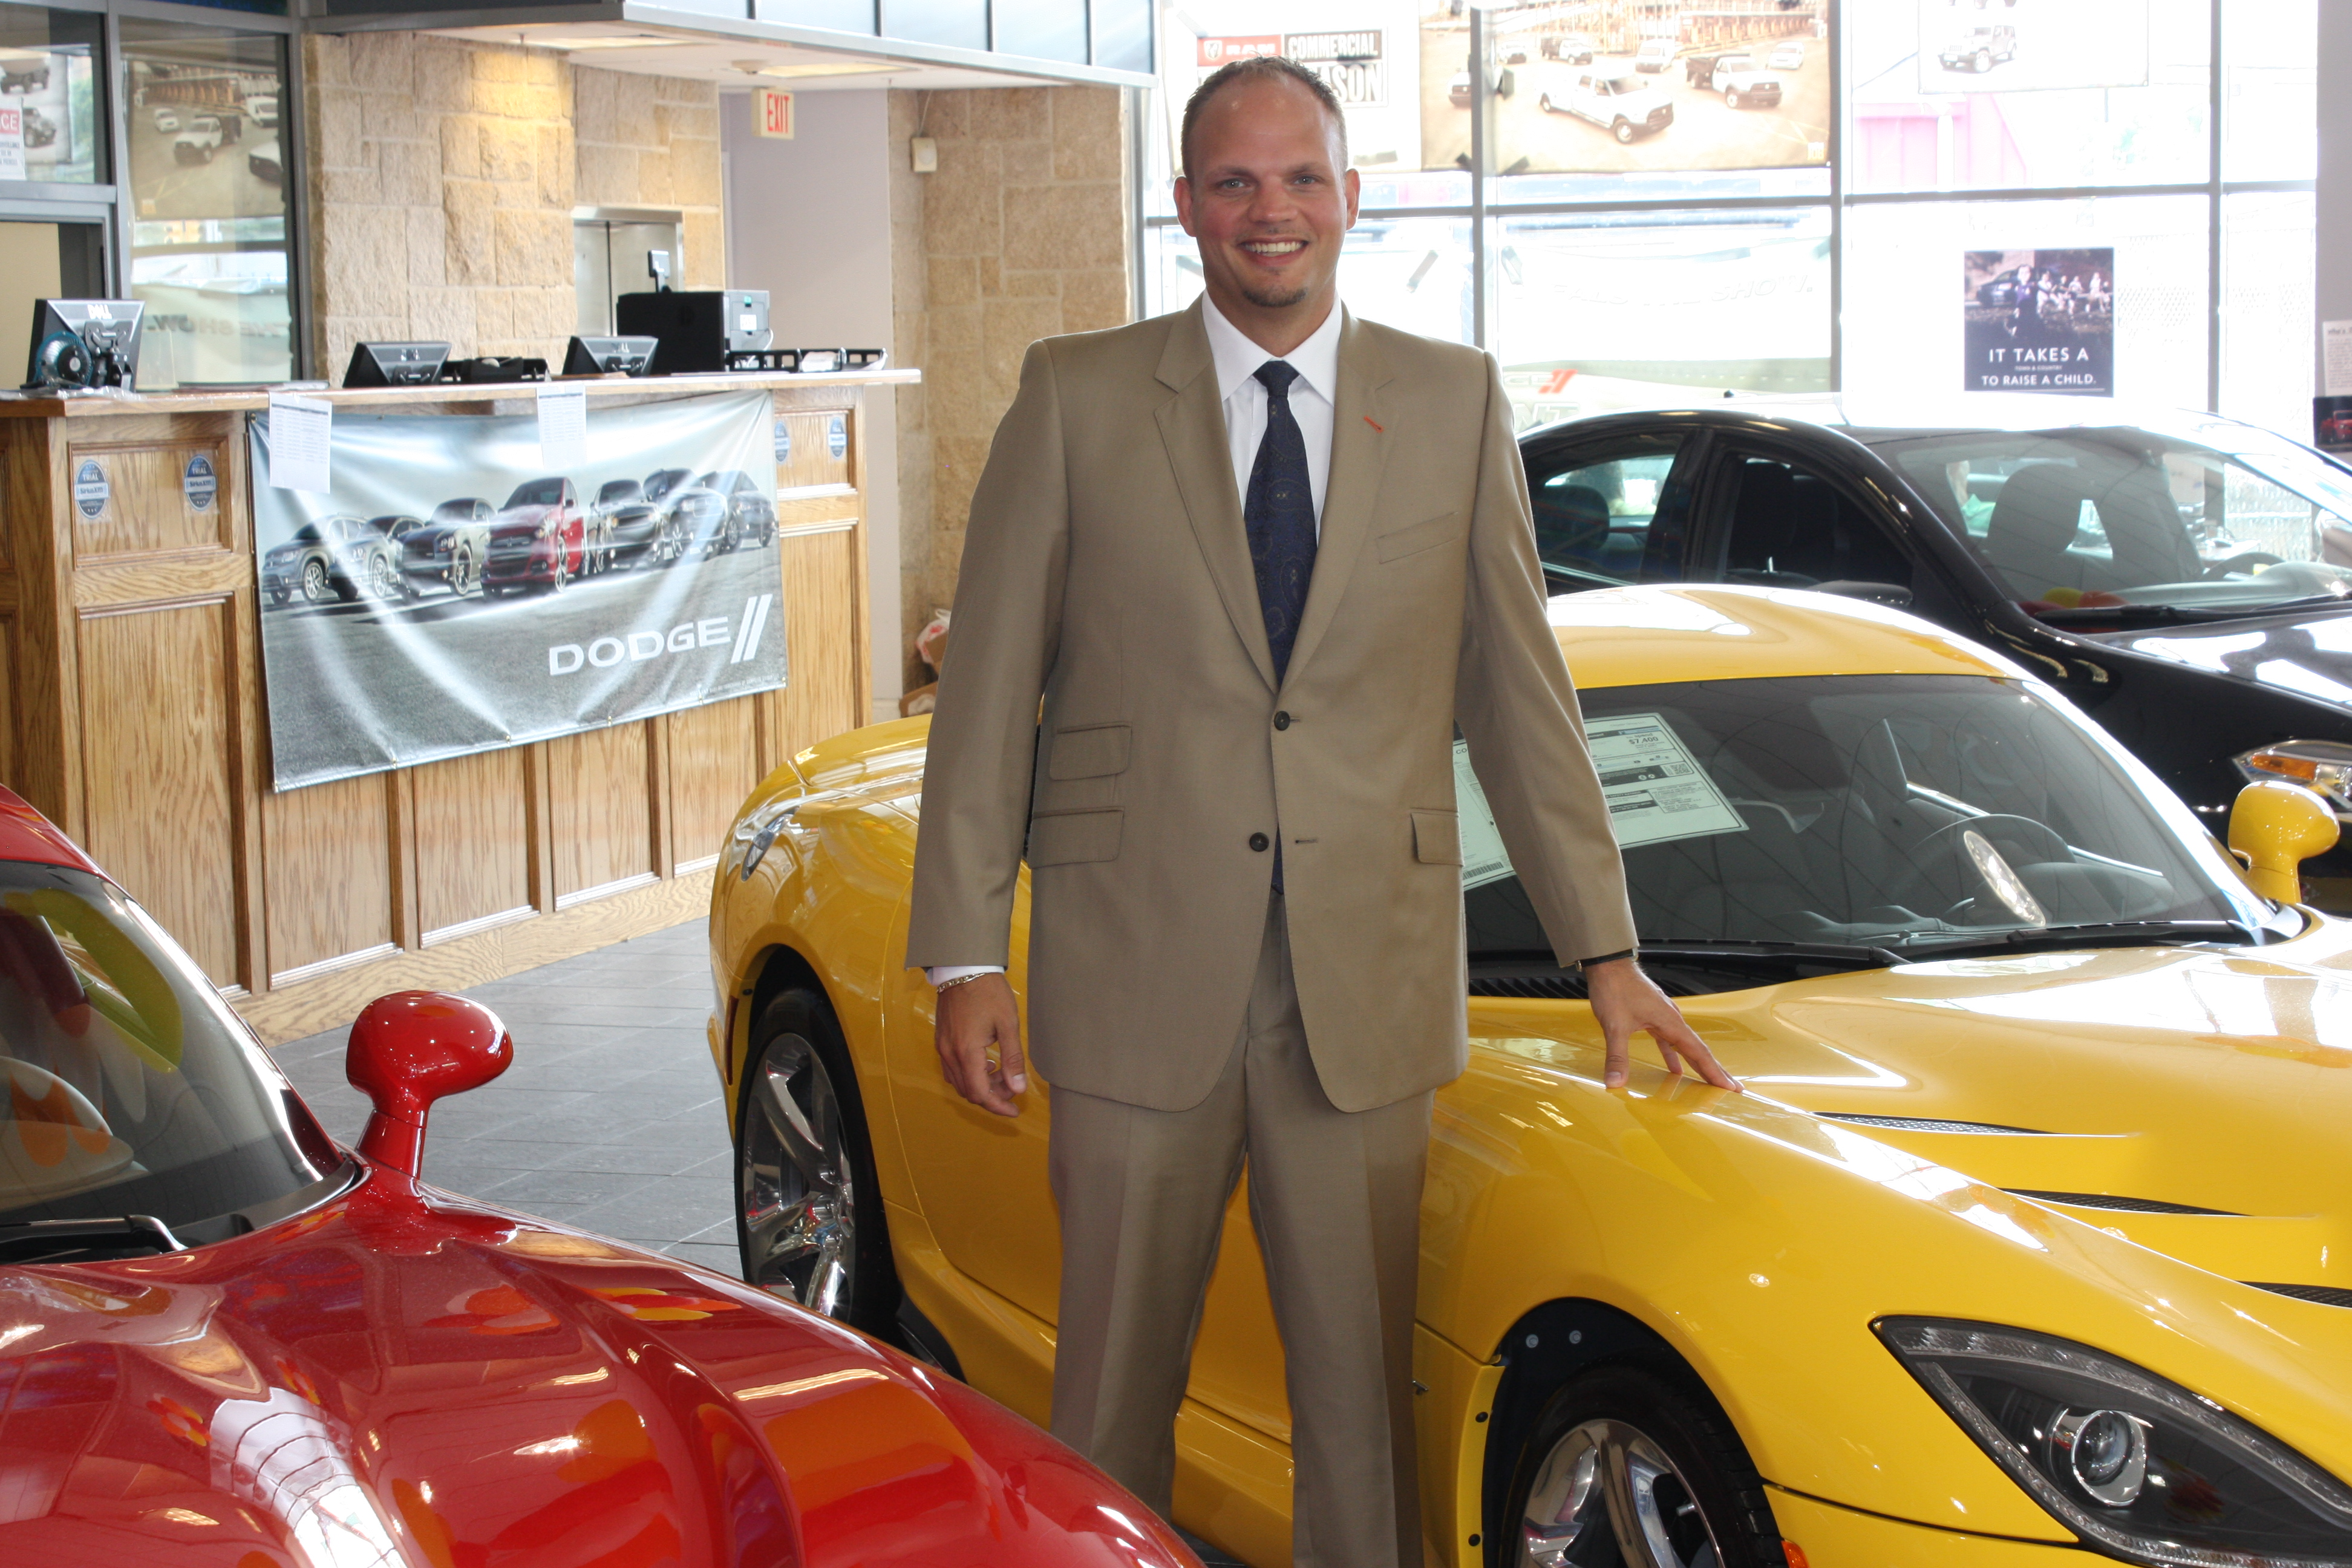 Eastchester Chrysler Jeep Dodge Pays For Employees College - Chrysler jeep and dodge